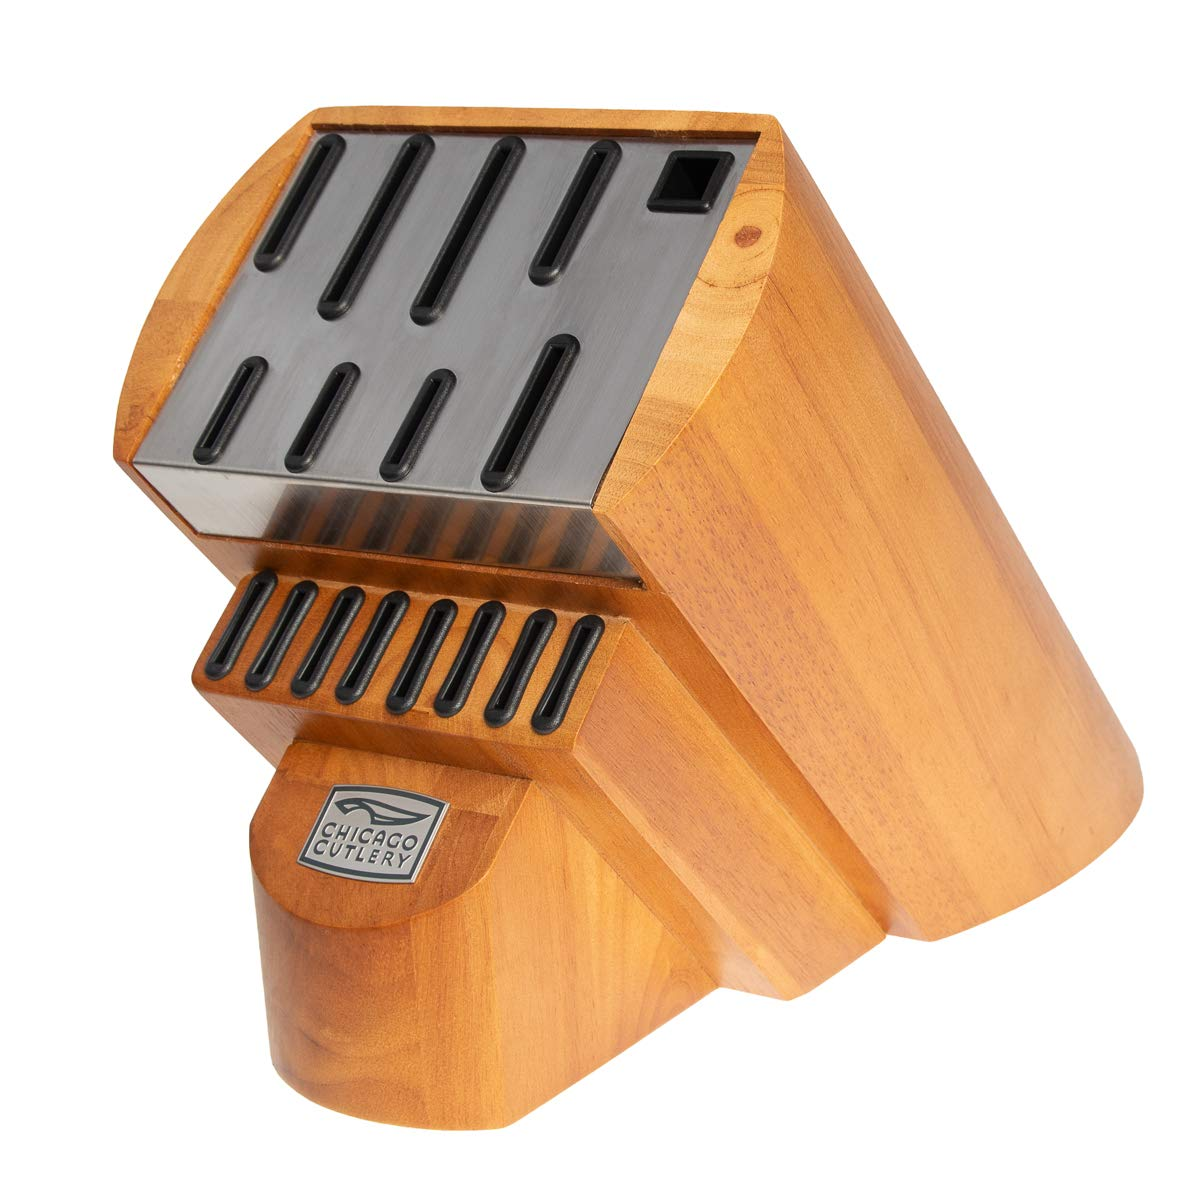 Chicago Cutlery Knife Block Without Knives 17 Slot Cutlery Organizer by Chicago Cutlery